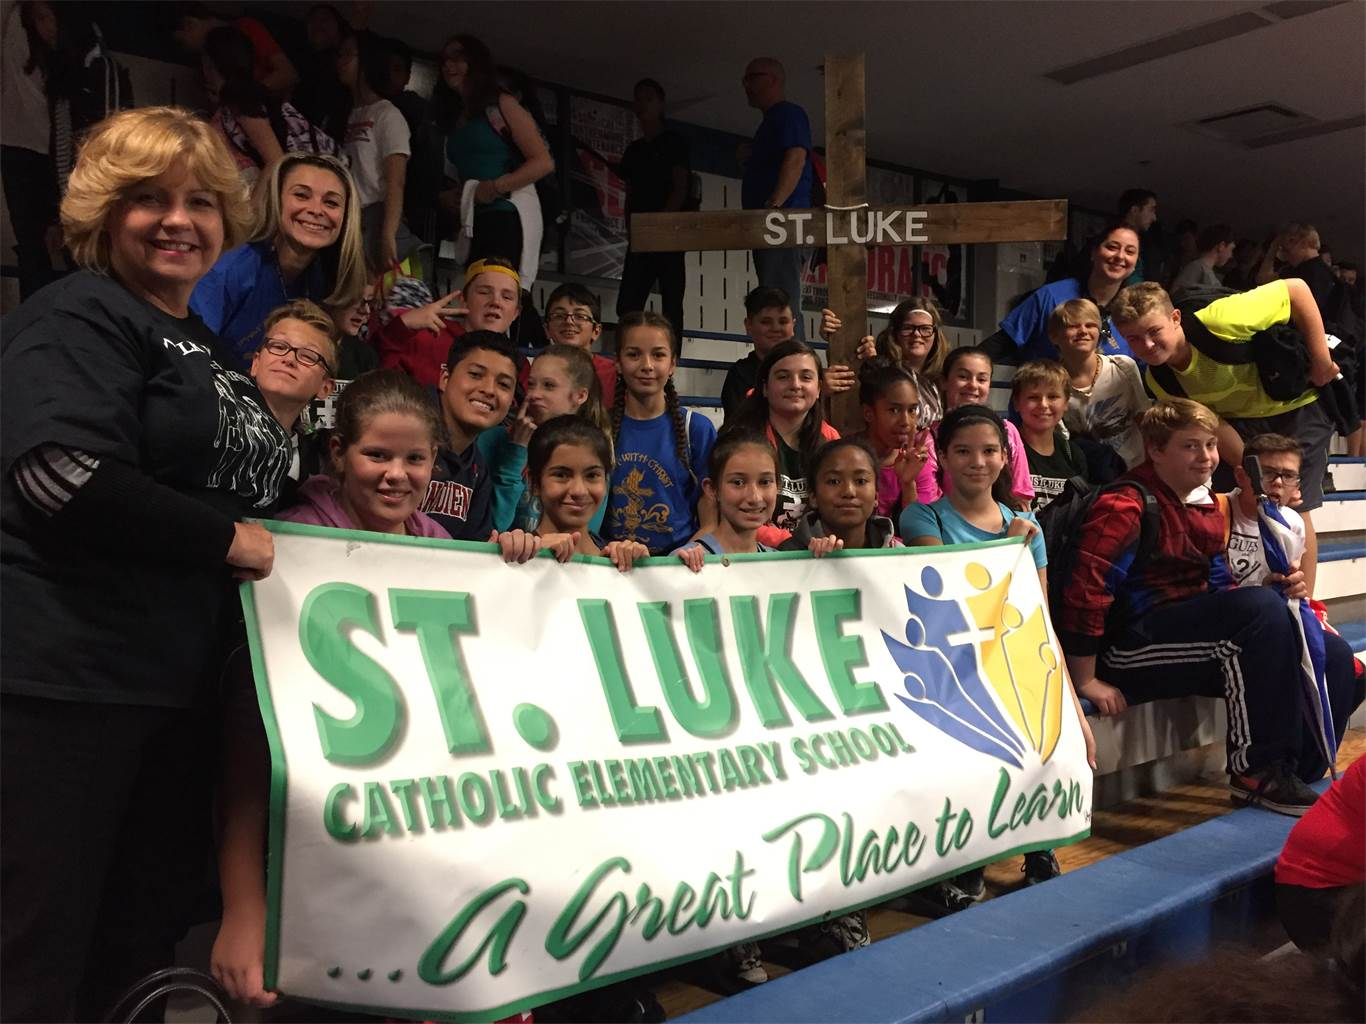 Students from St. Luke Catholic Elementary School attend a Eucharistic Celebration at Cathedral High School on Oct. 15. Close to 3,000 students and staff take part in the annual